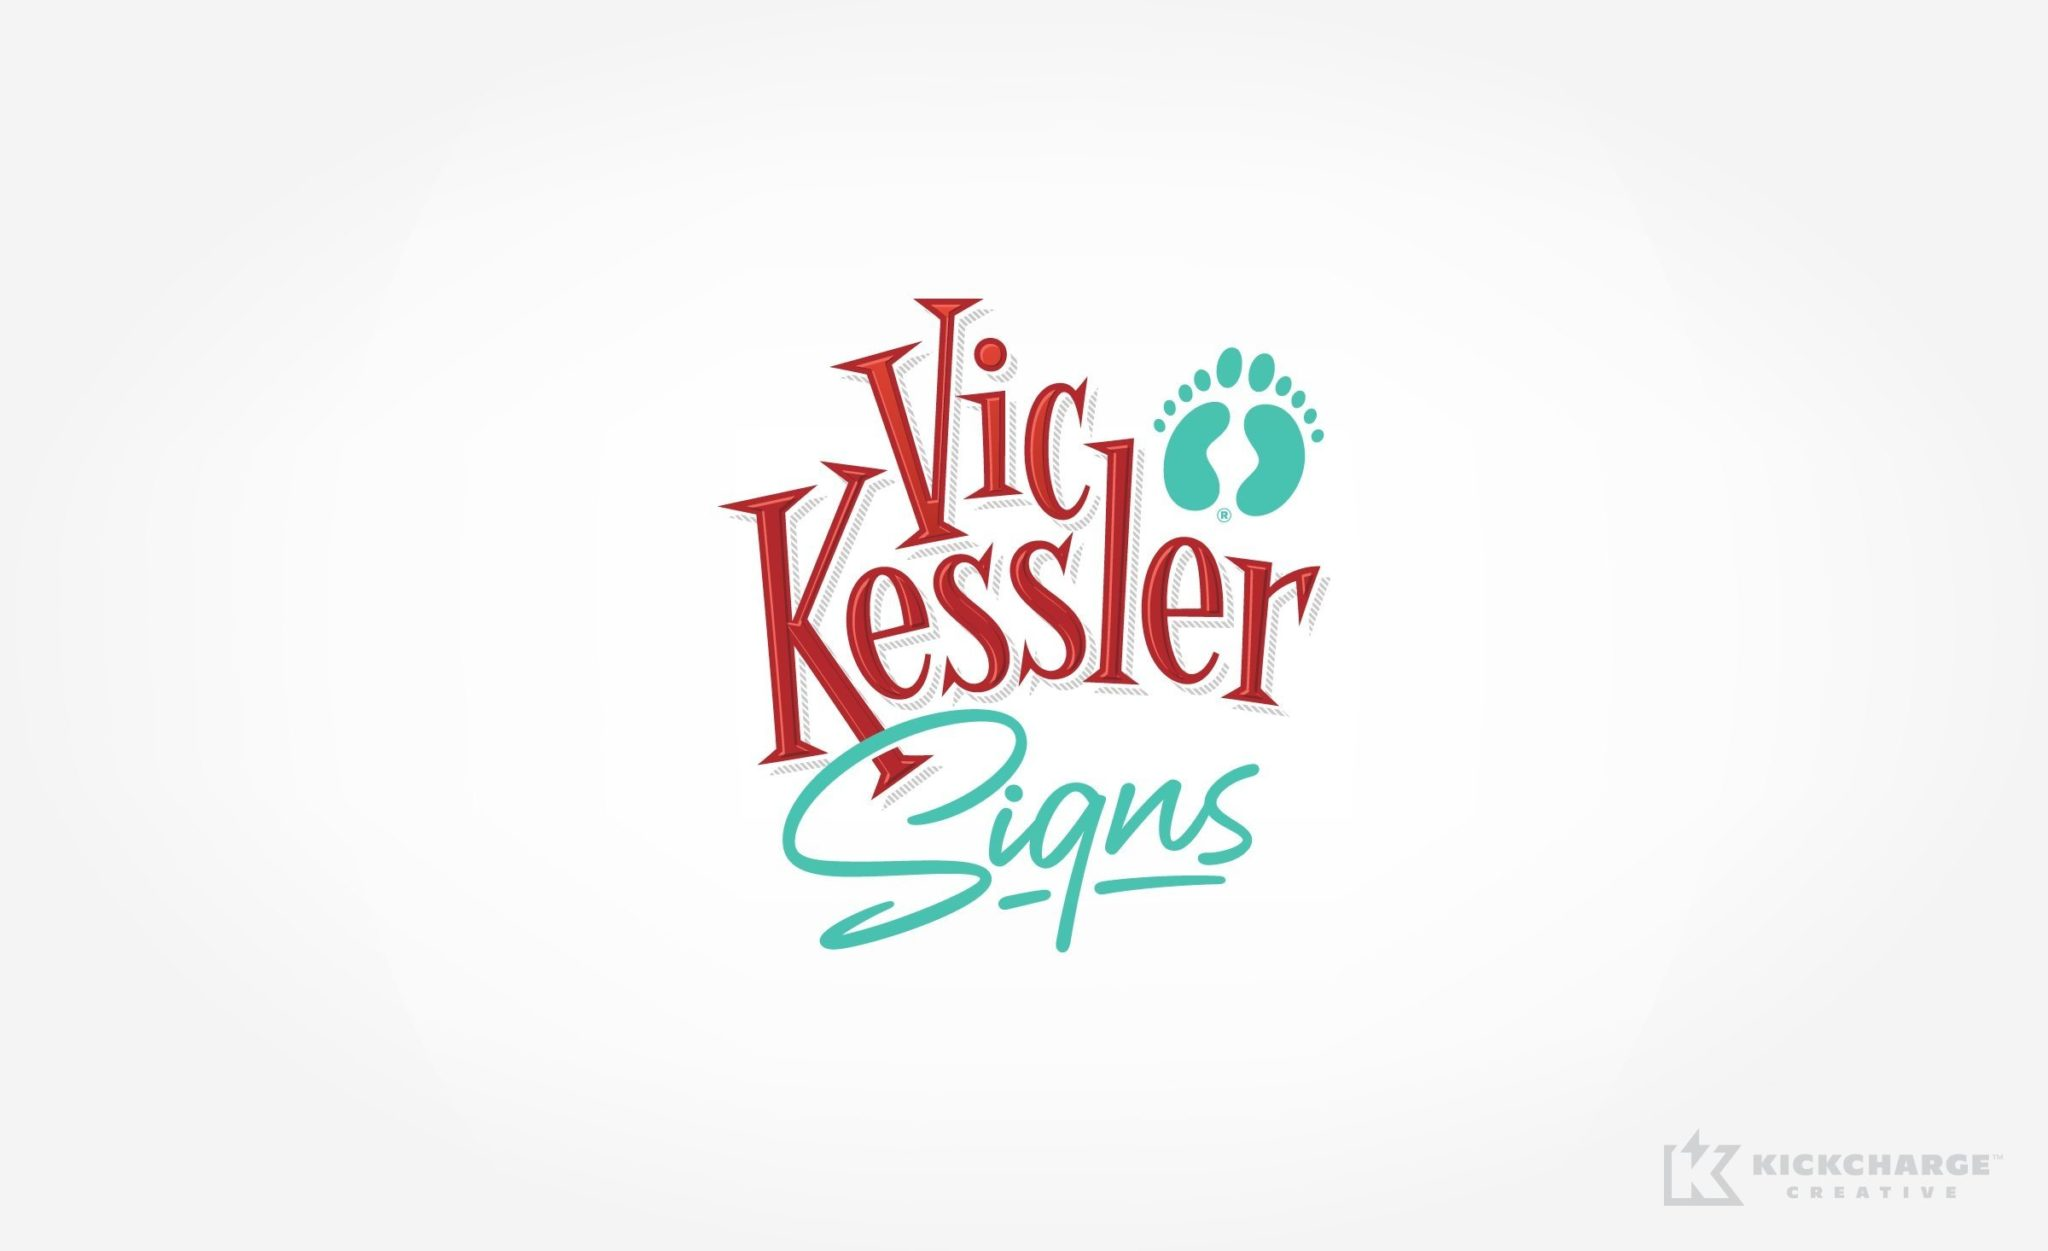 Vic Kessler Signs